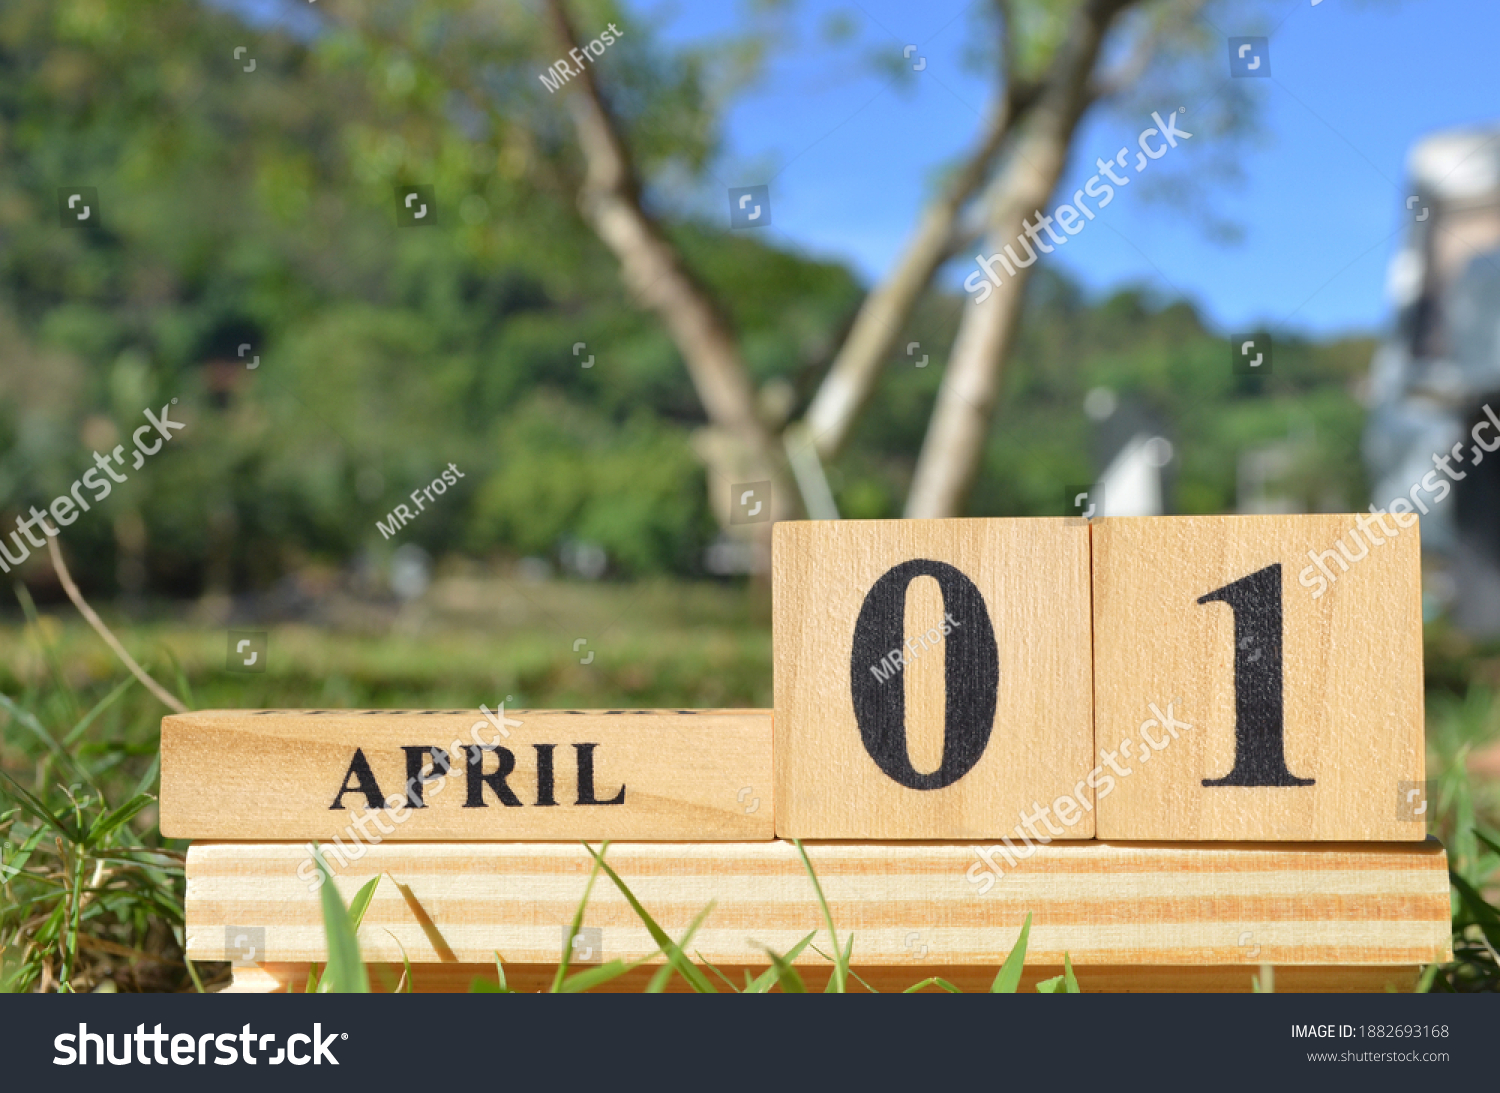 April 1, Cover natural background for your business. #1882693168